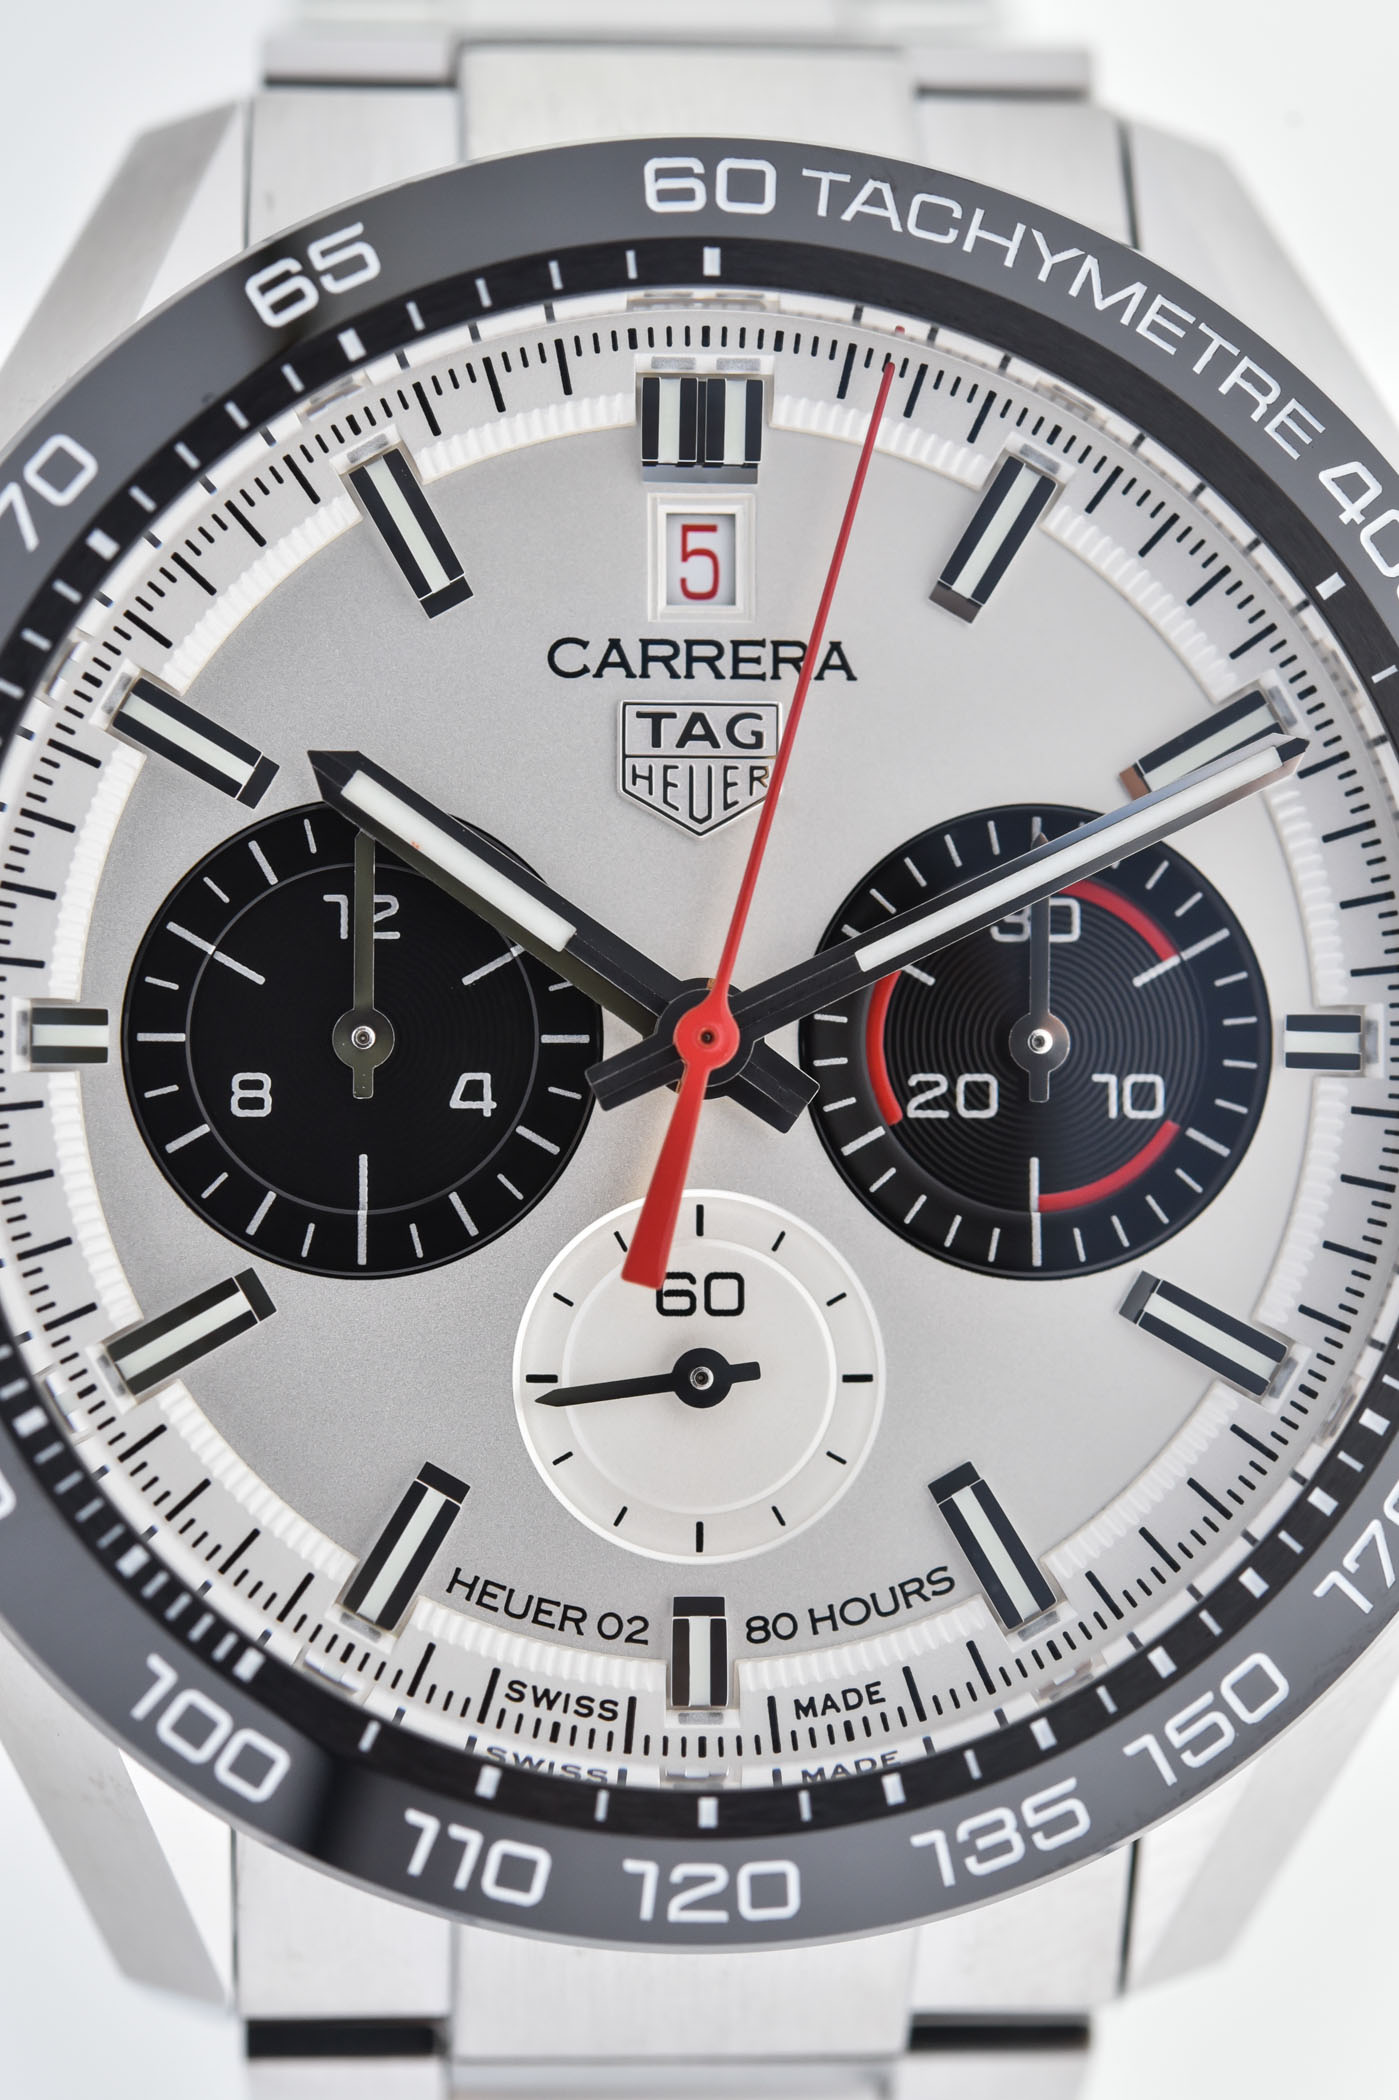 TAG Heuer Carrera Sport Chronograph 160 Years Special Edition DATO 12